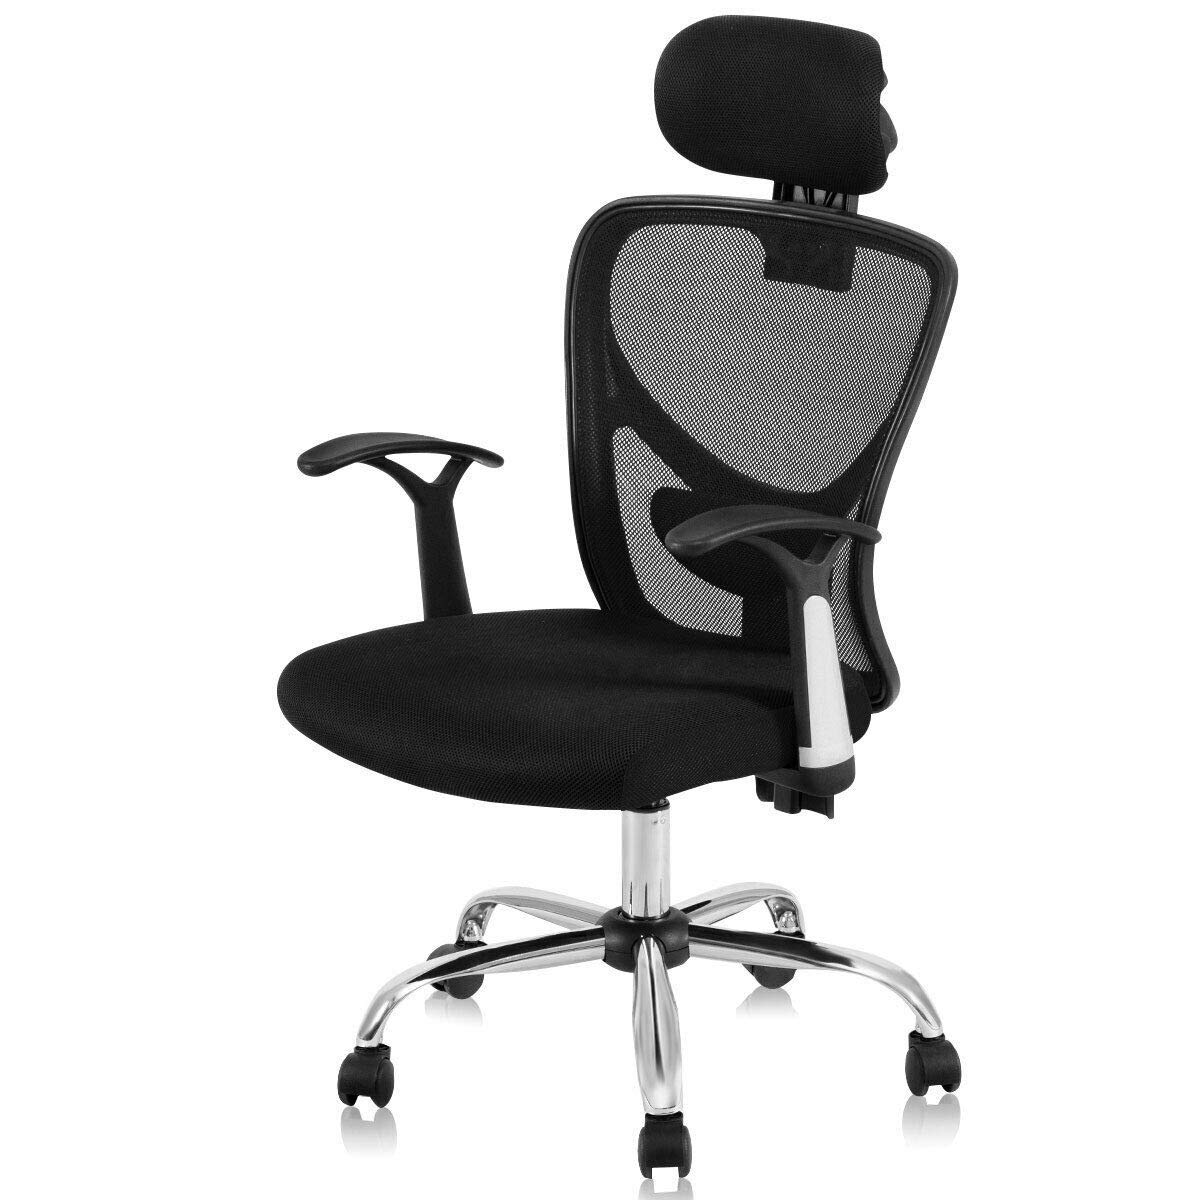 Dayanaprincess Ergonomic Mesh High Back Office Desk Chair with Headrest Solid and Durable Construction Comfortable Seat with Armrest Living Room Bedroom Useful Furniture Contemporary Design (Black) by Dayanaprincess